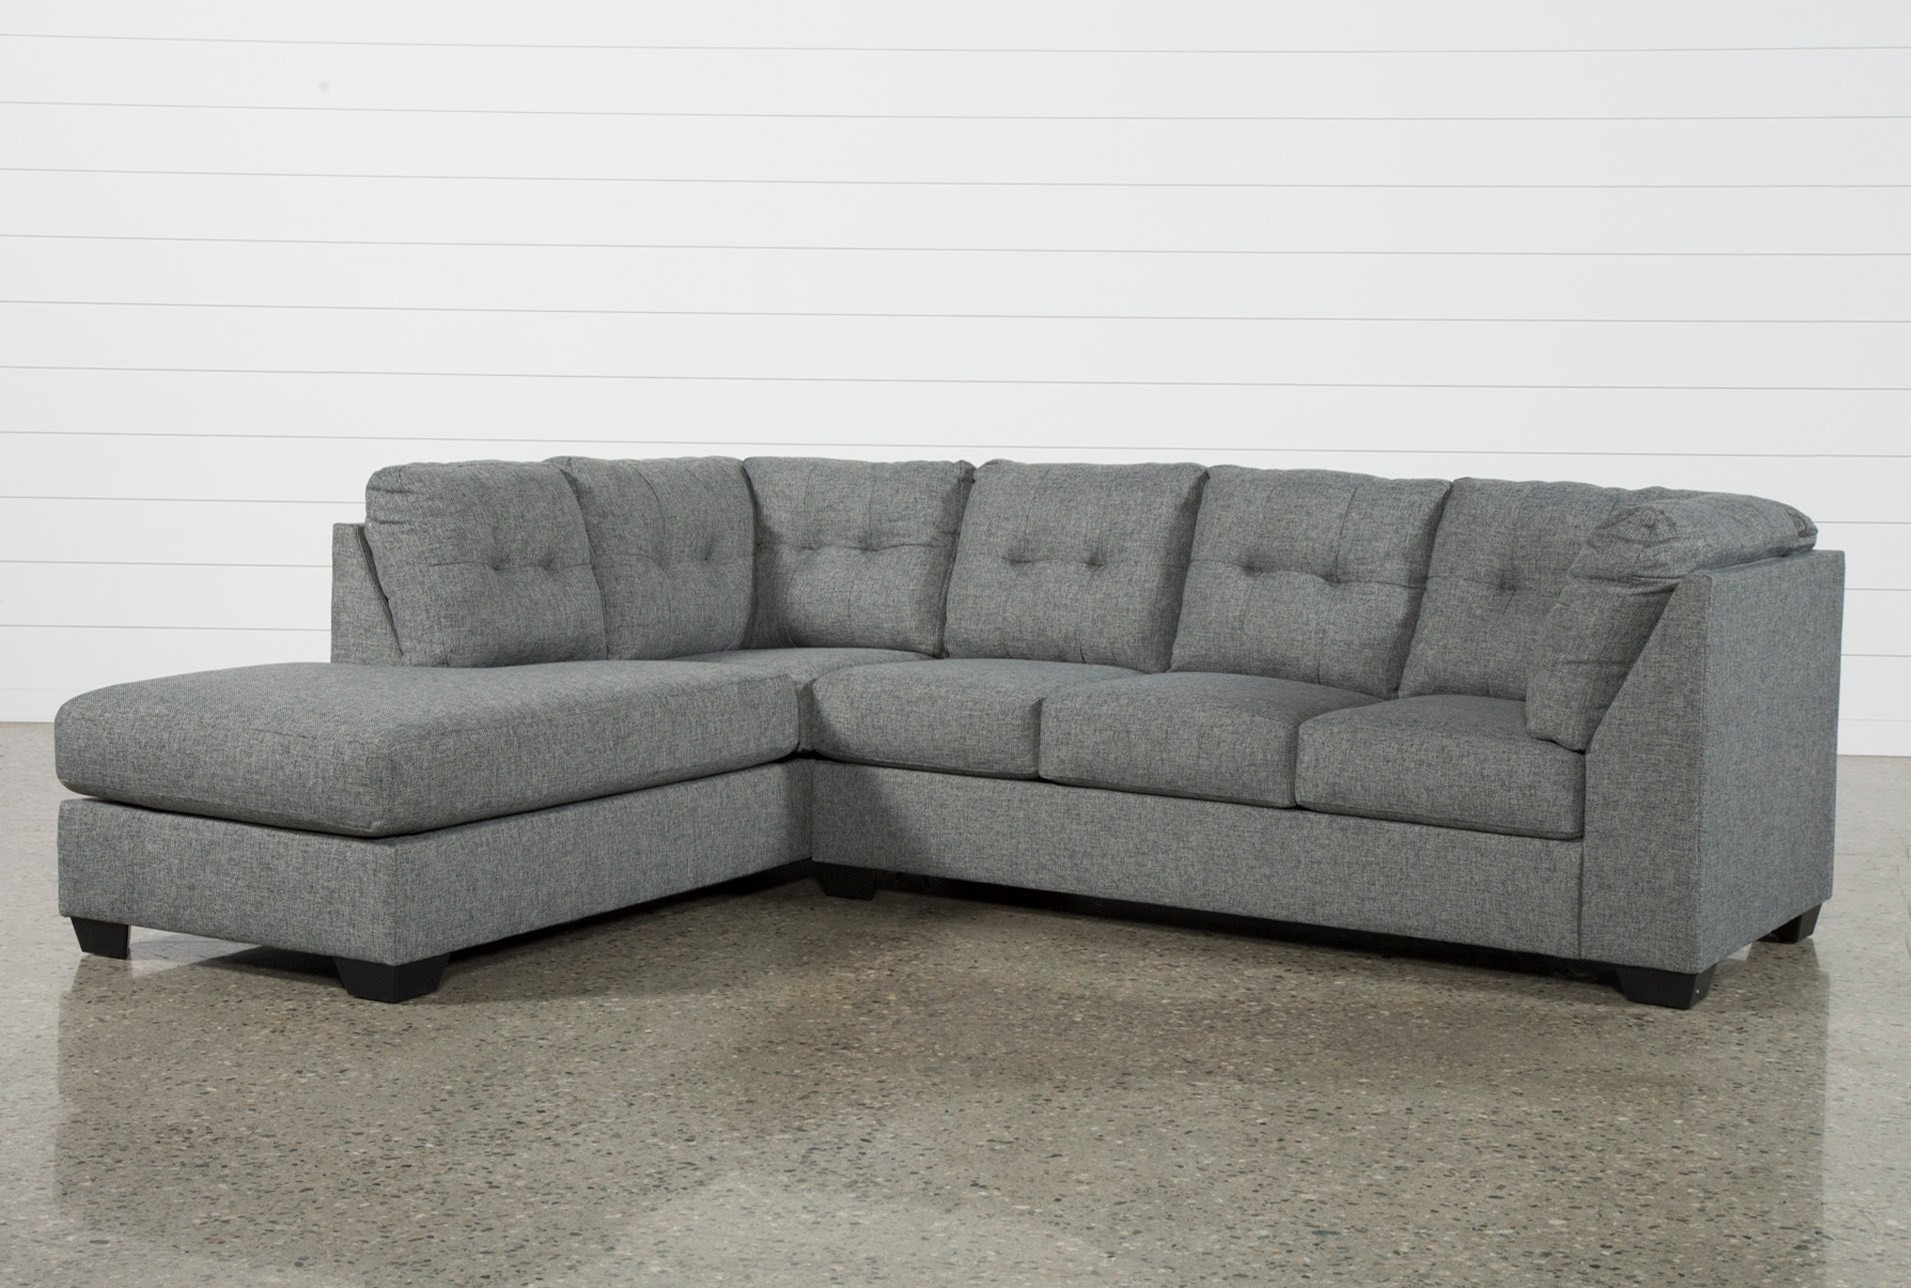 2 Piece Sectional Lucy Grey W Laf Chaise Living Spaces 225935 Fabric with regard to Lucy Dark Grey 2 Piece Sectionals With Laf Chaise